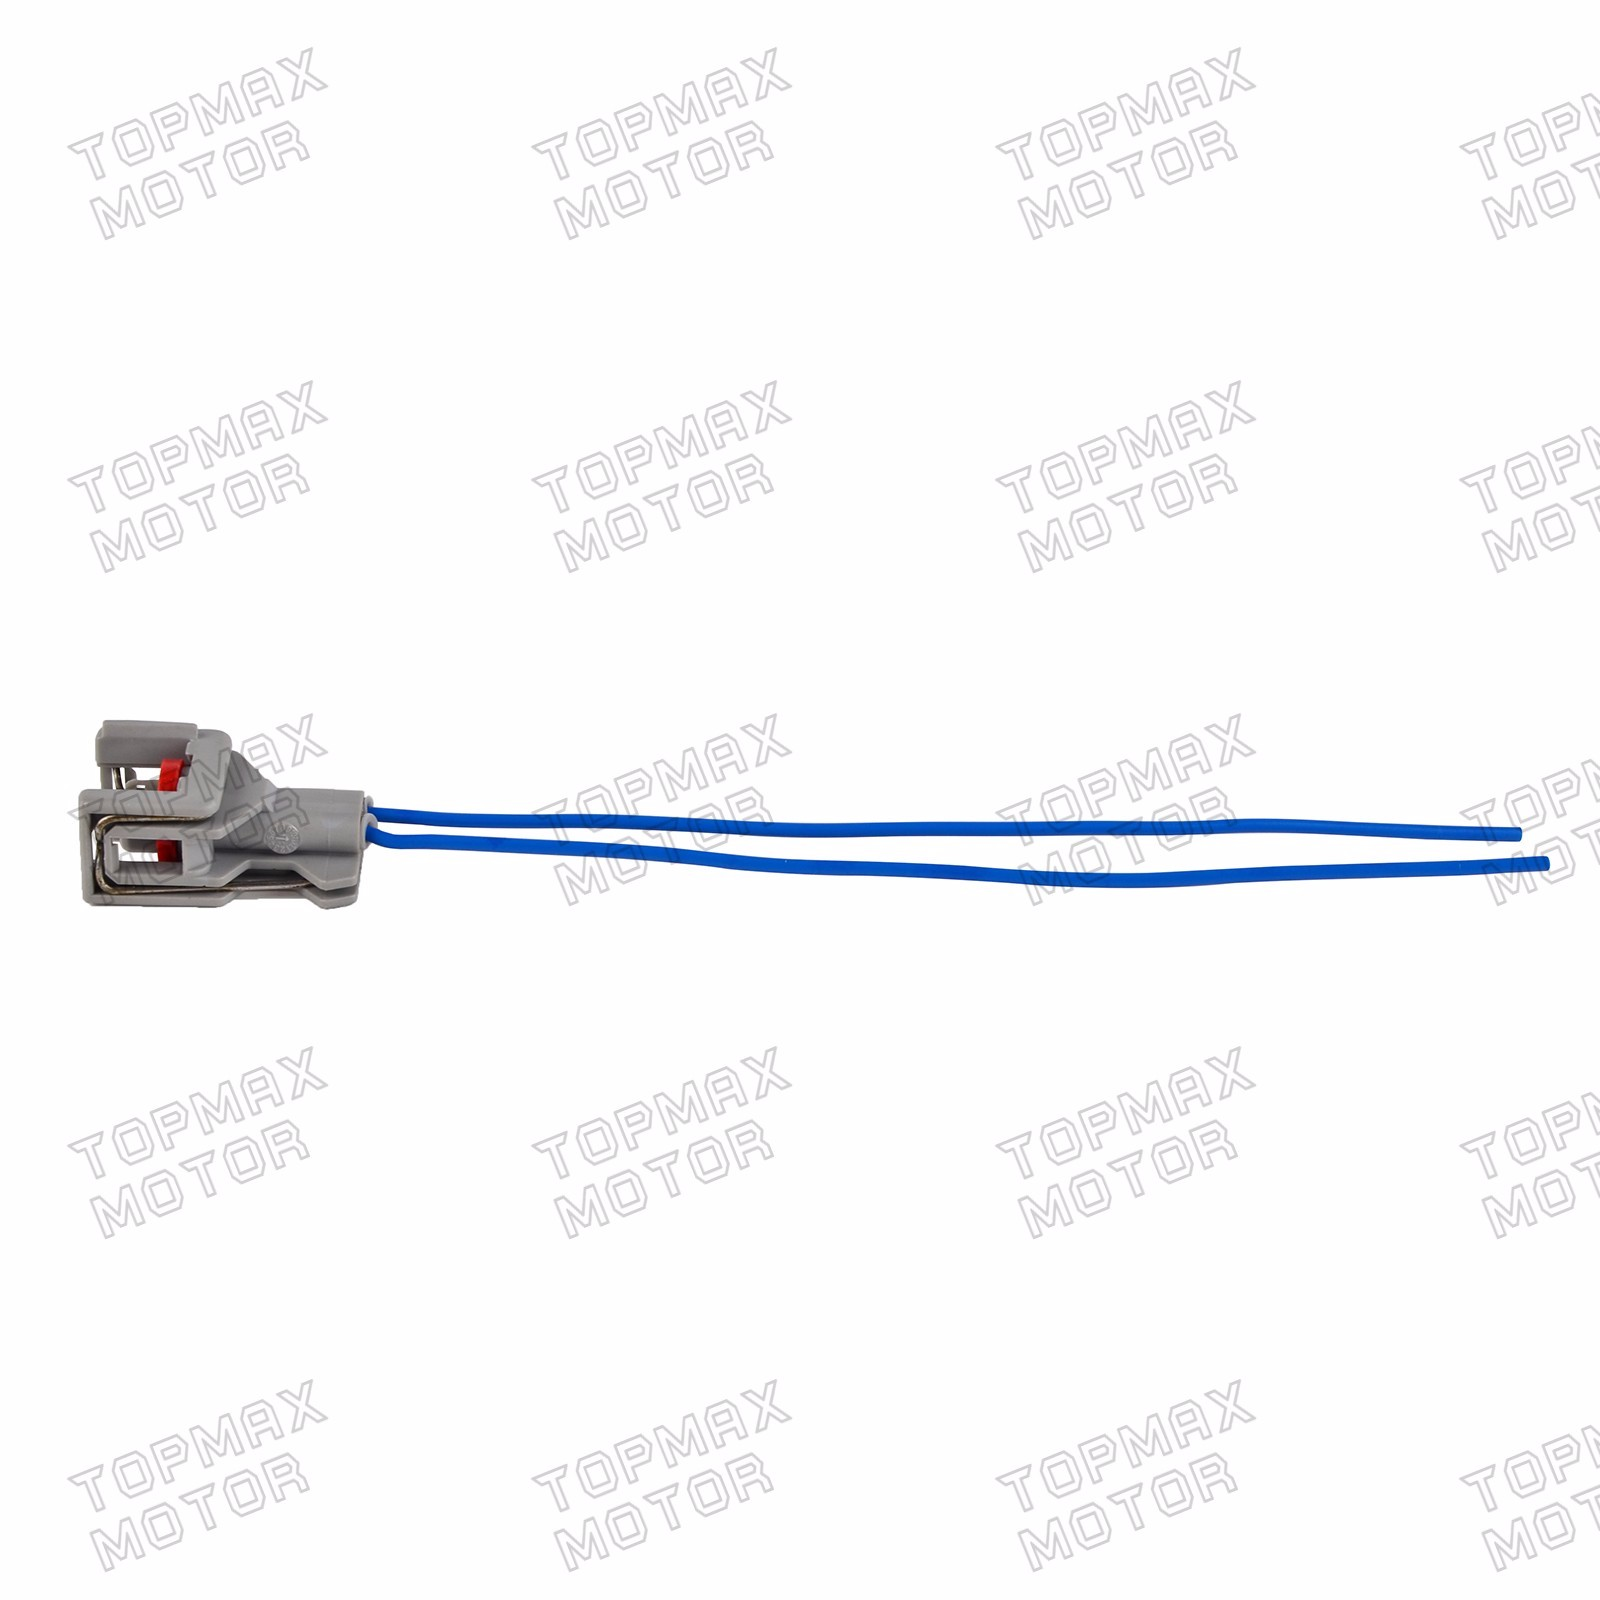 Common Railsel Injector Electric Connector Plug For